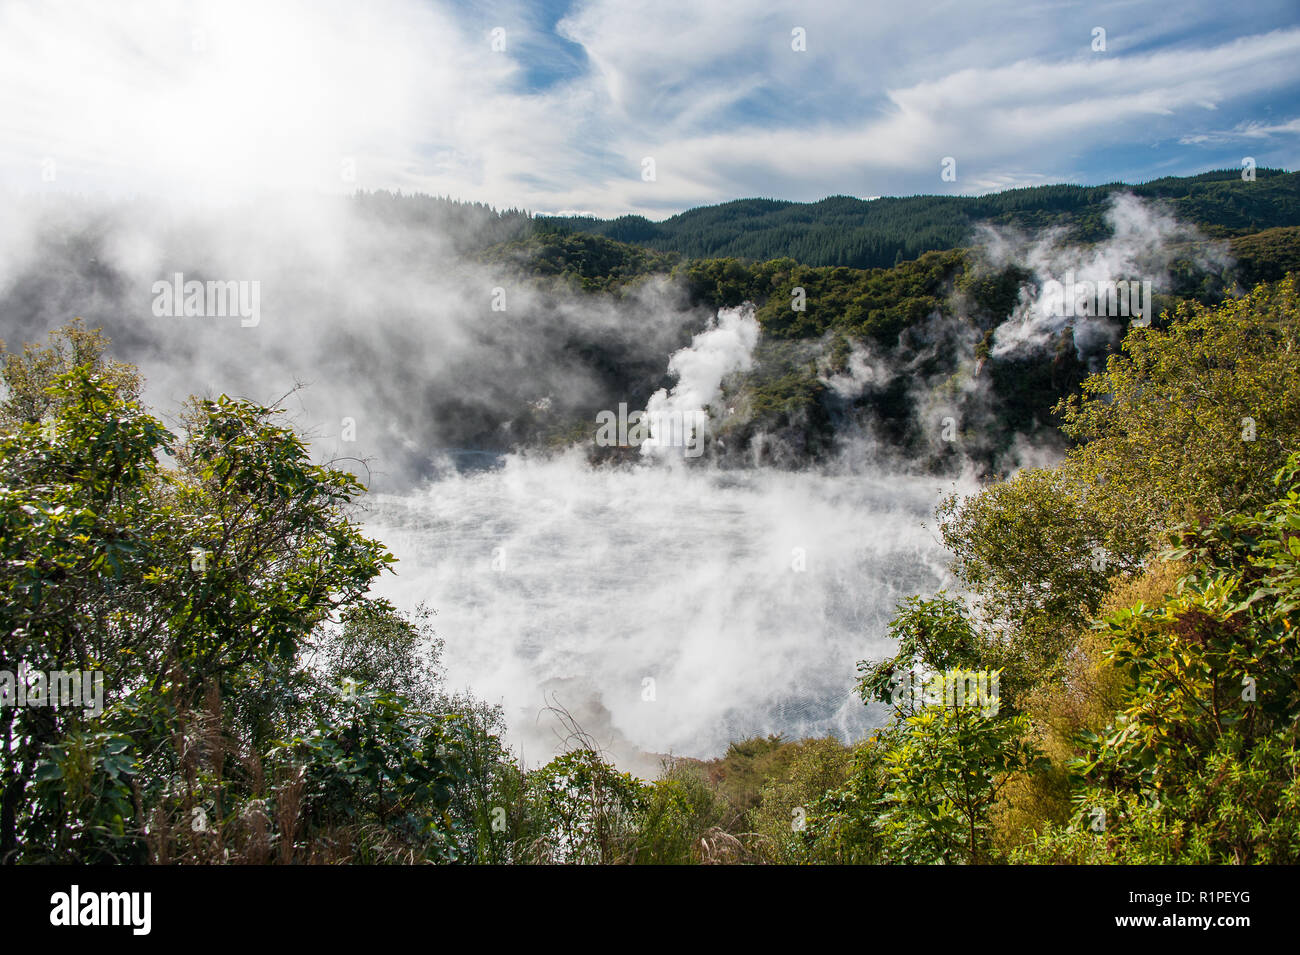 Frying Pan Lake, Waimangu Volcanic Valley, New Zealand. Steam rising over the lake creates a bubbling cauldron in a prehistoric forest landscape. - Stock Image